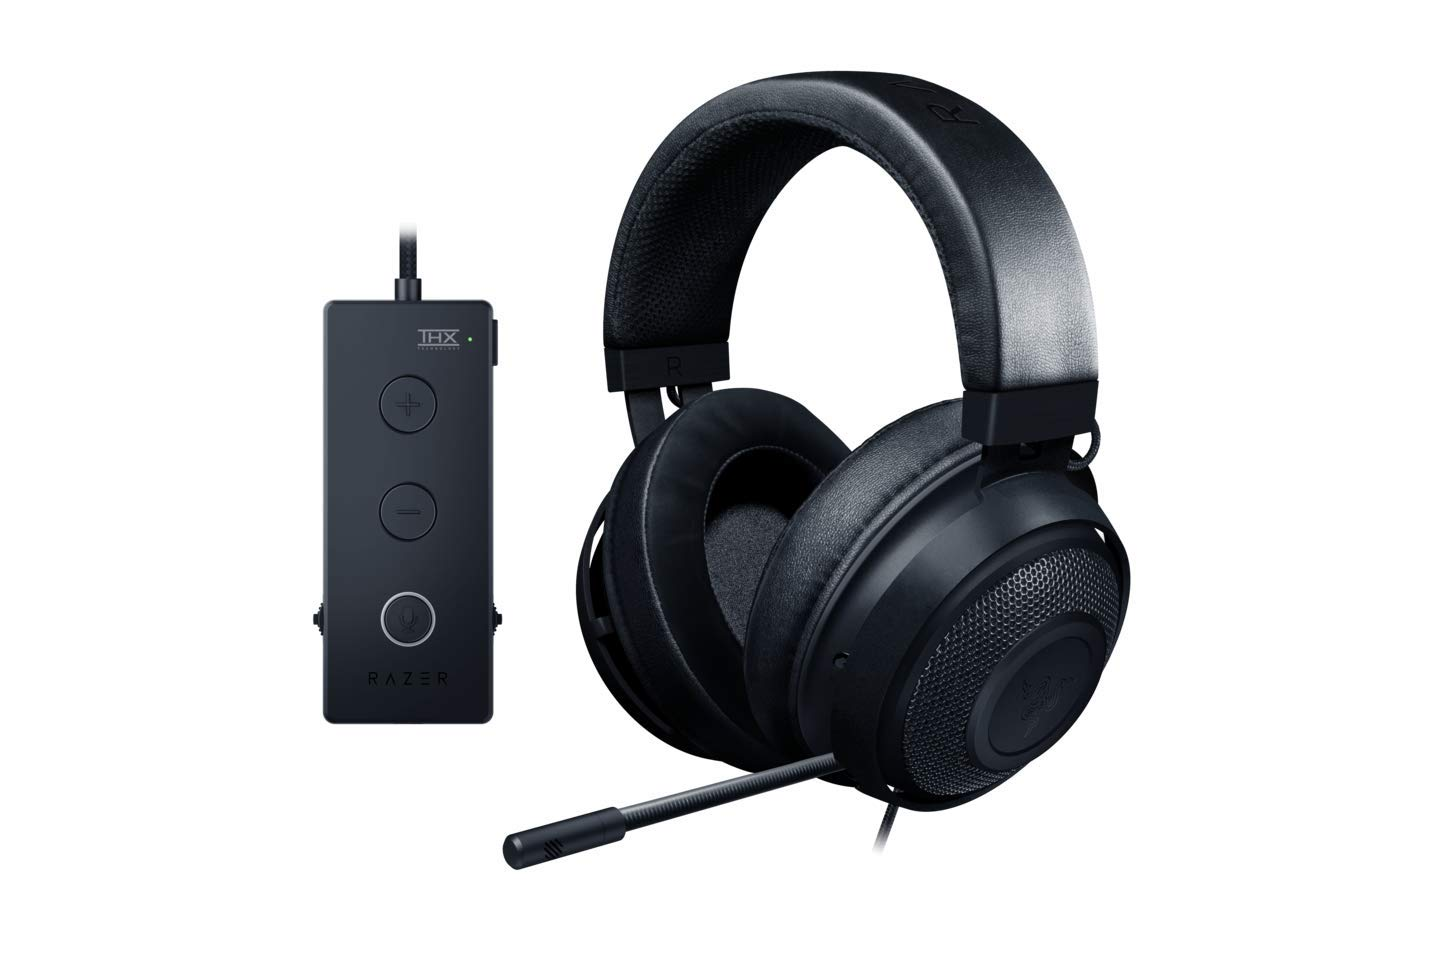 Razer Kraken Tournament Edition THX 7.1 Surround Sound Gaming Headset: Aluminum Frame - Retractable Noise Cancelling Mic - USB DAC Included - For PC, Xbox, PS4, Nintendo Switch - Matte Black